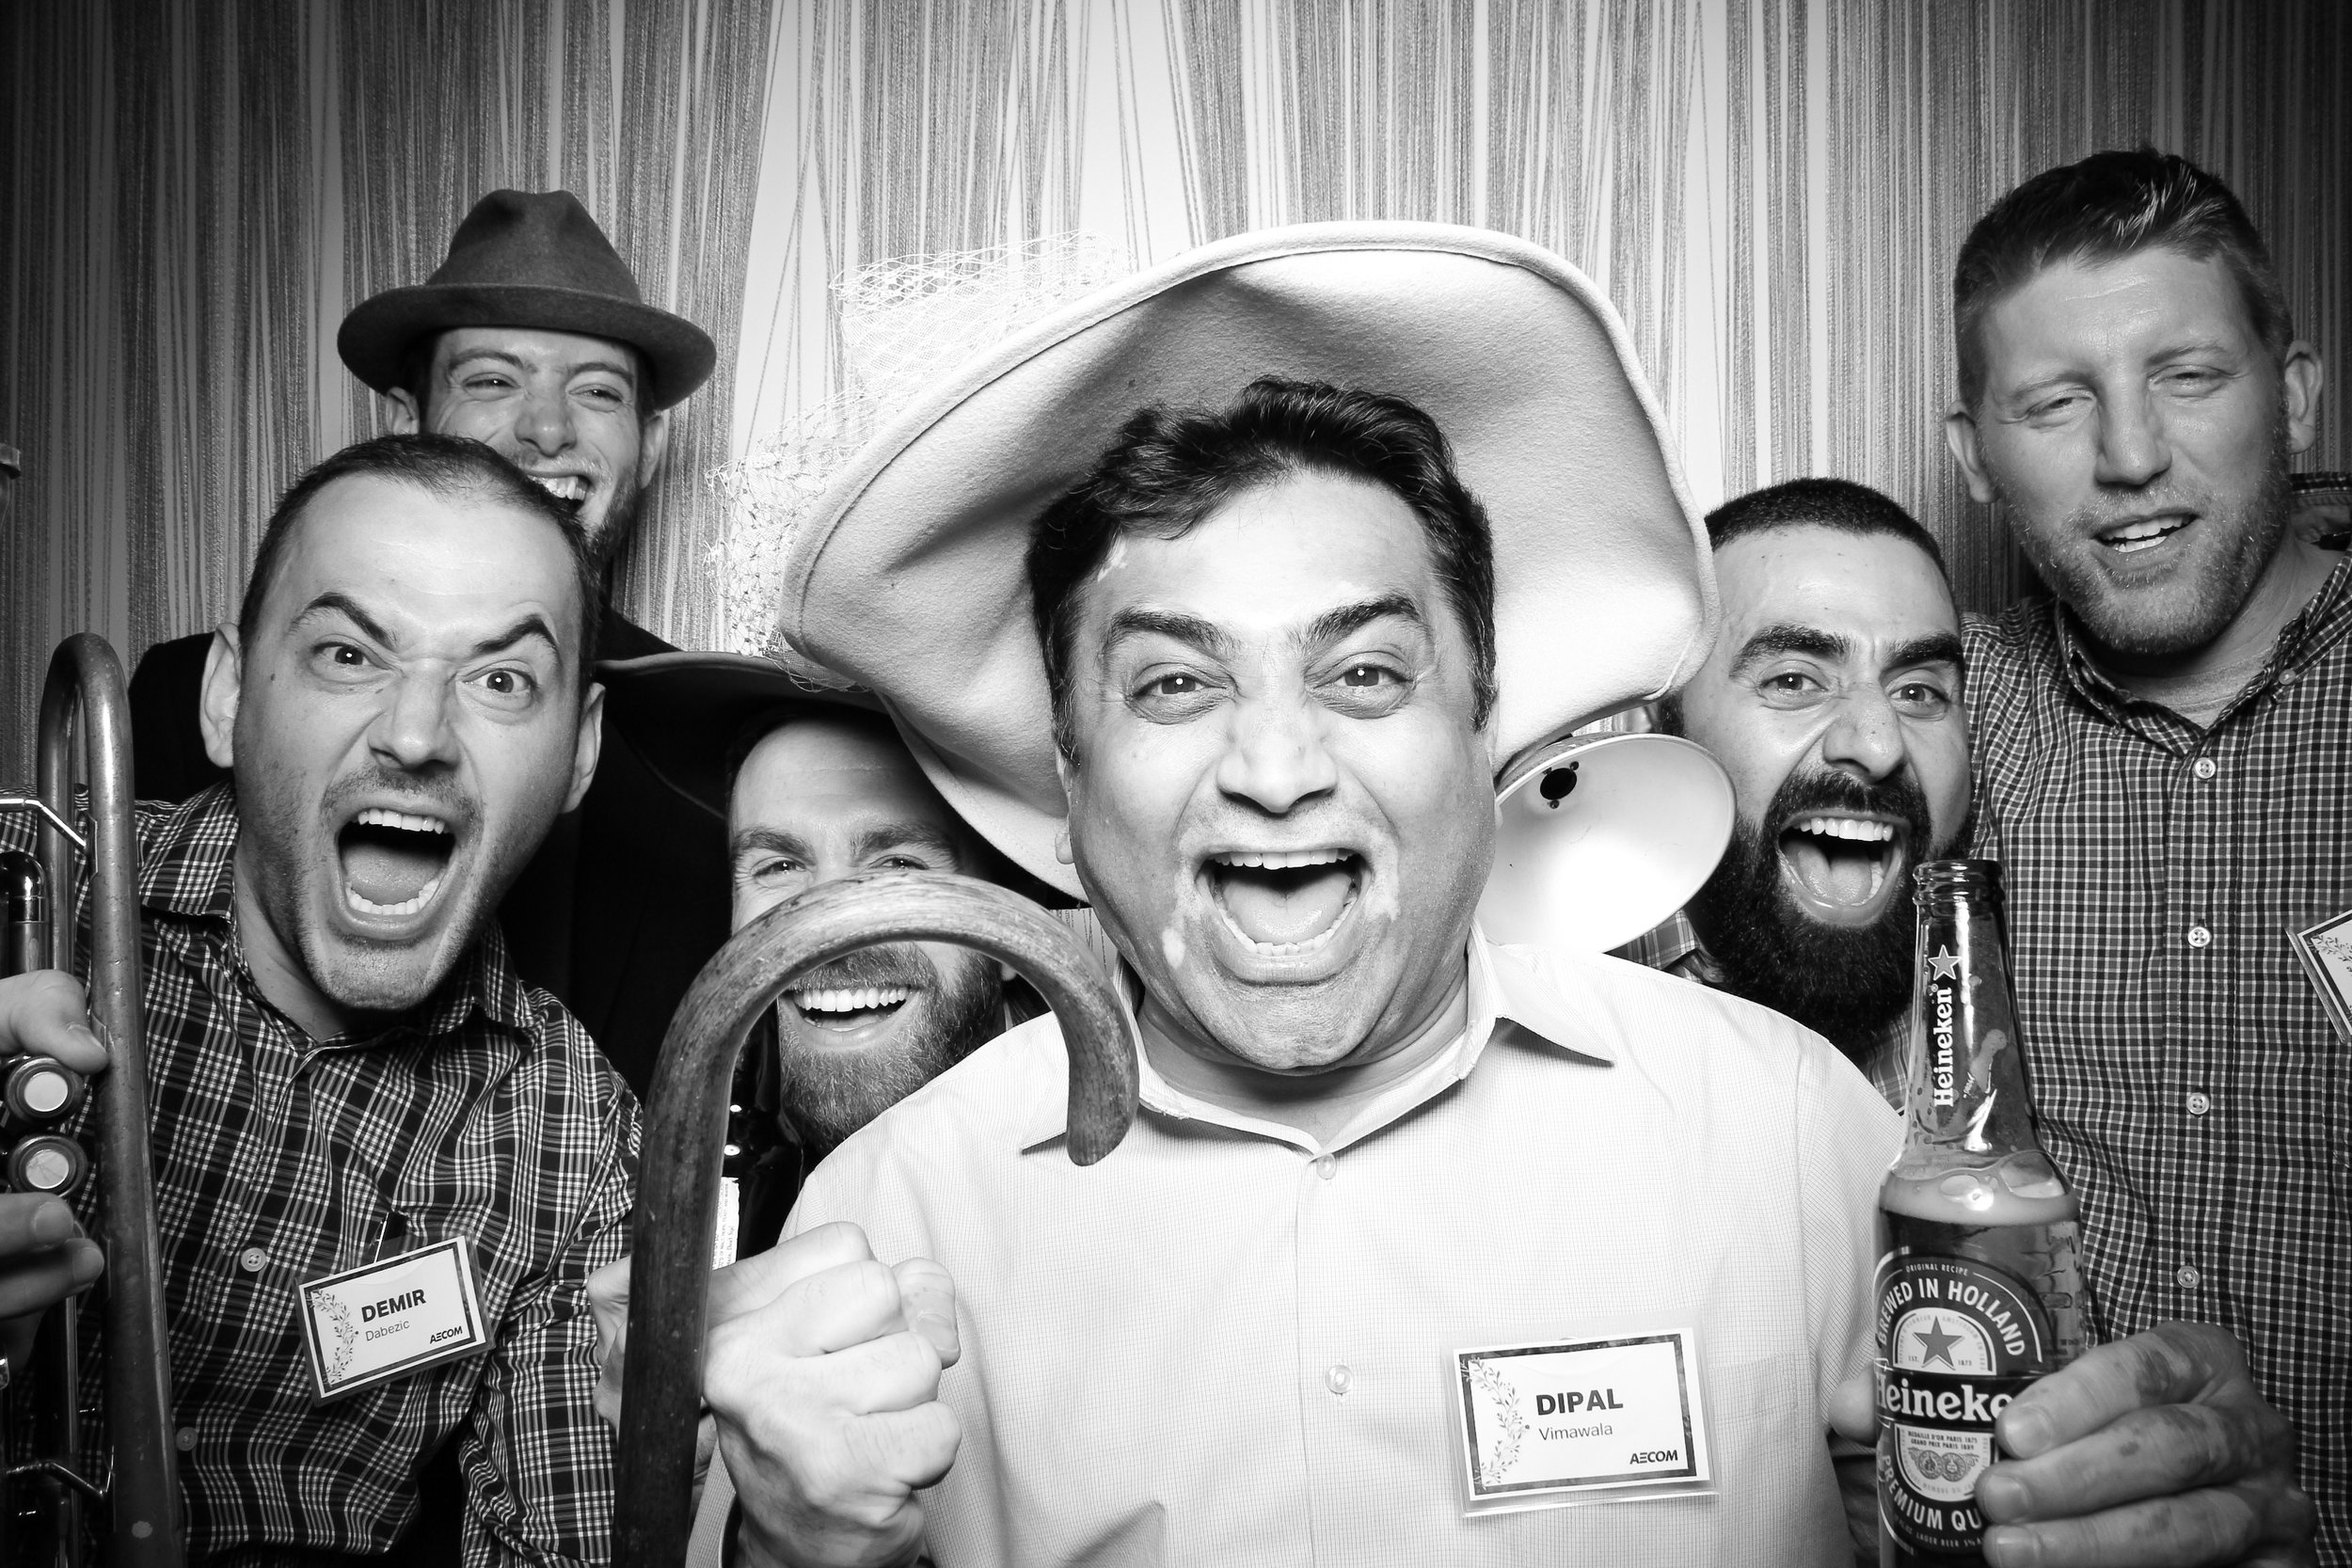 Chicago_Vintage_Photobooth_Holiday_Party_Wit_Hotel_27.jpg